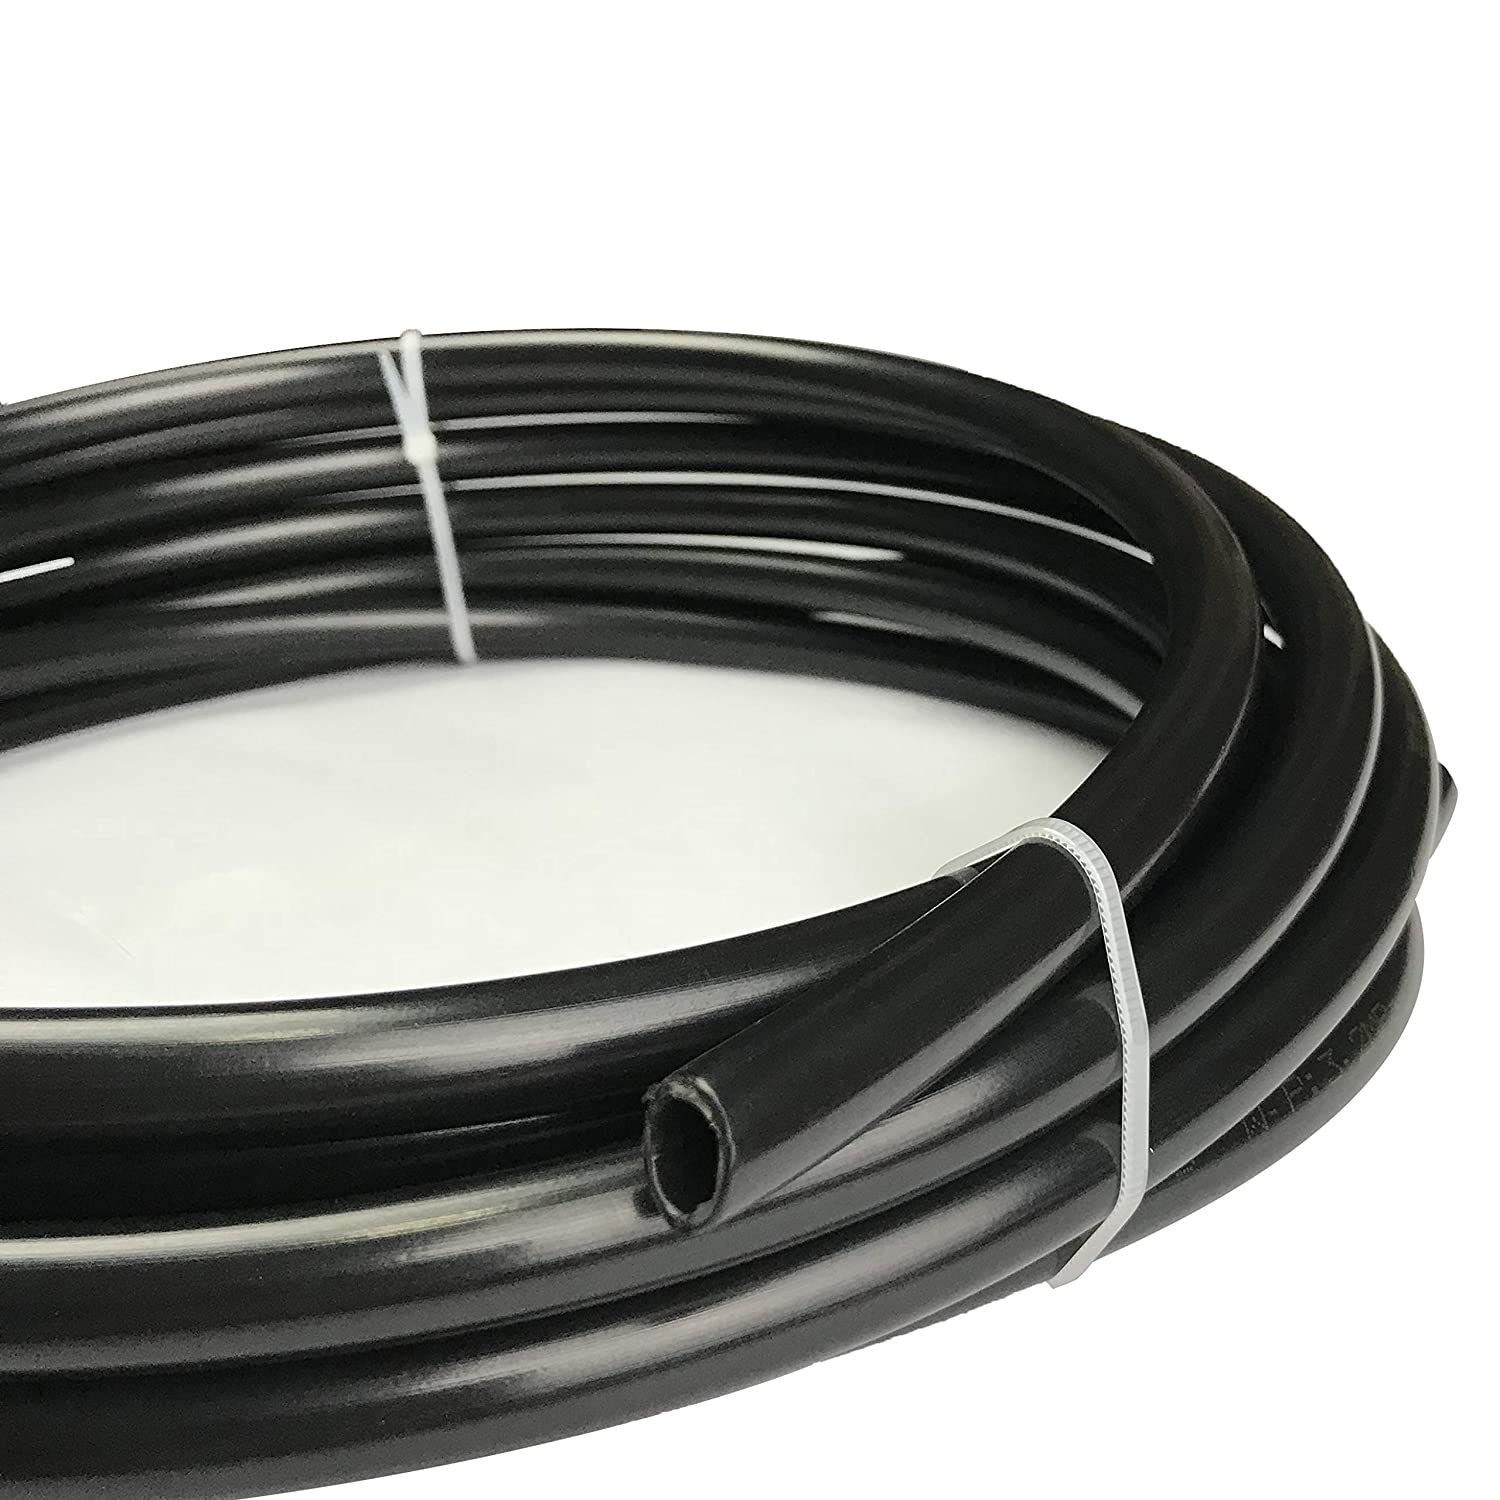 20 feet Fuel Line Nylon Tubing 5//16 ID Hose 3//8 OD Pneumatic Tube for for Air Brake System Or Fluid Transfer Black